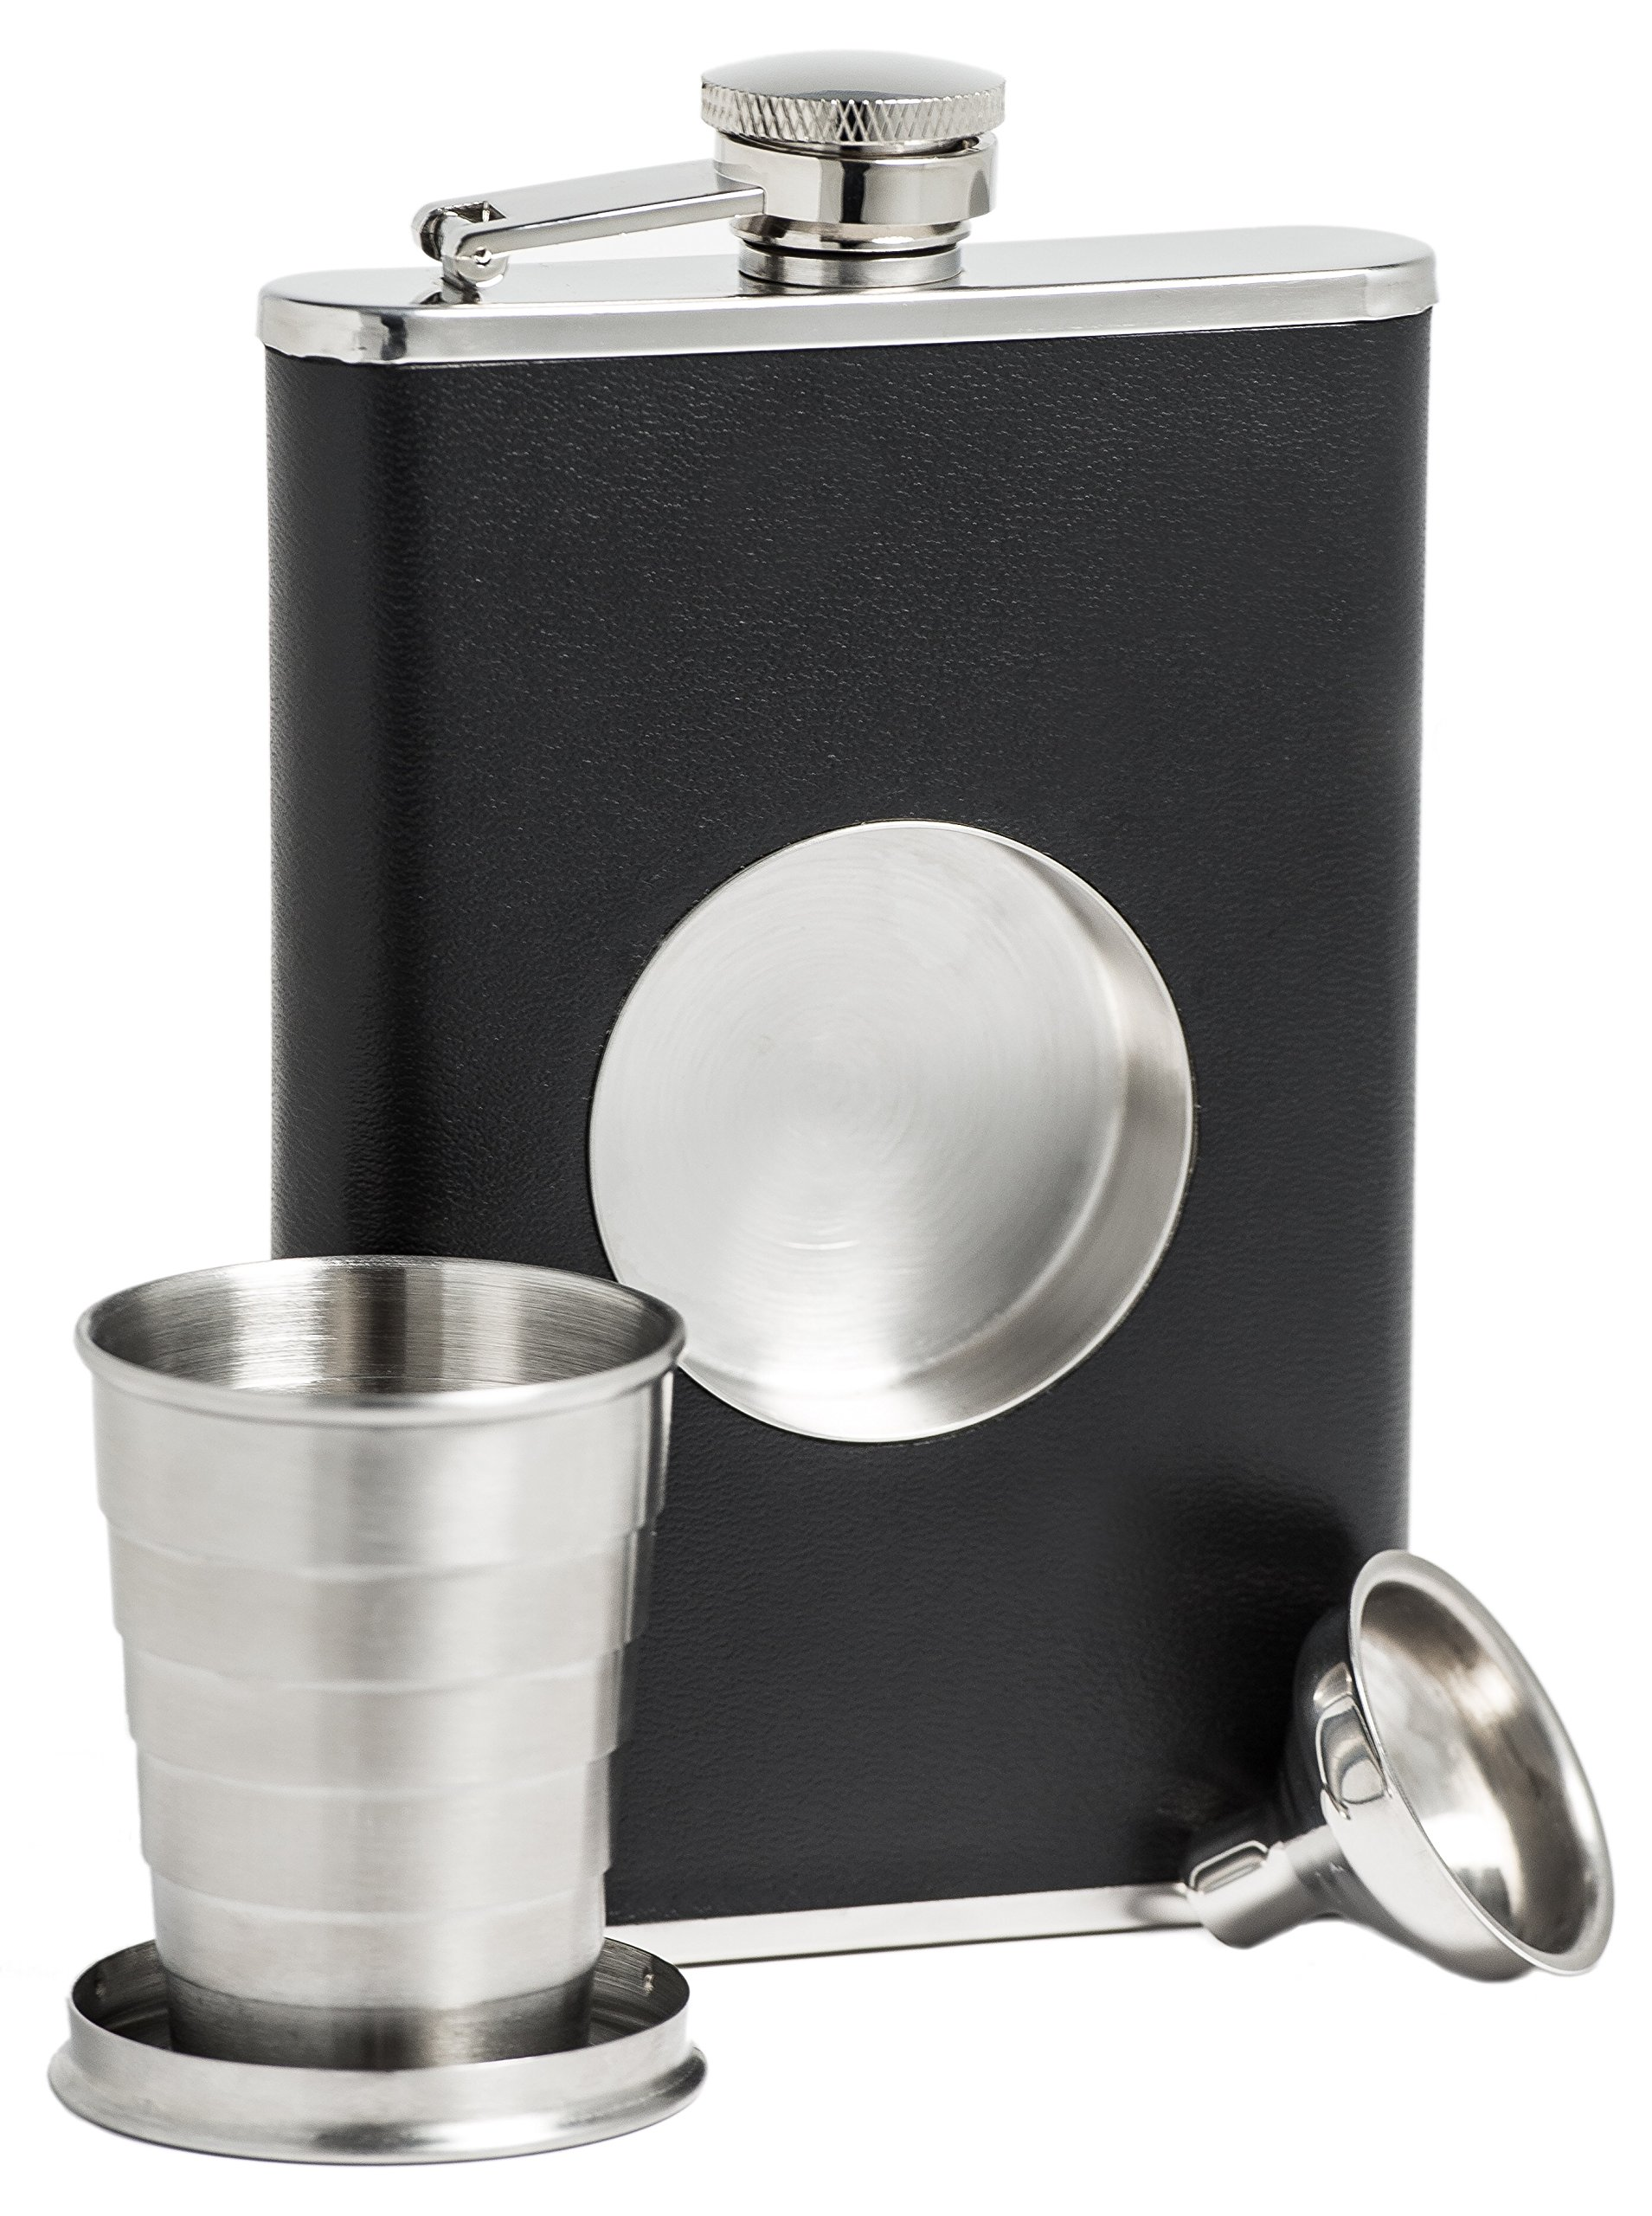 Shot Flask - Stainless Steel 8 oz Hip Flask, Built-in Collapsible 2 Oz. Shot Glass & Flask Funnel - Everything You Need to Pour Shots on the Go - BarMe Brand by BarMe (Image #1)